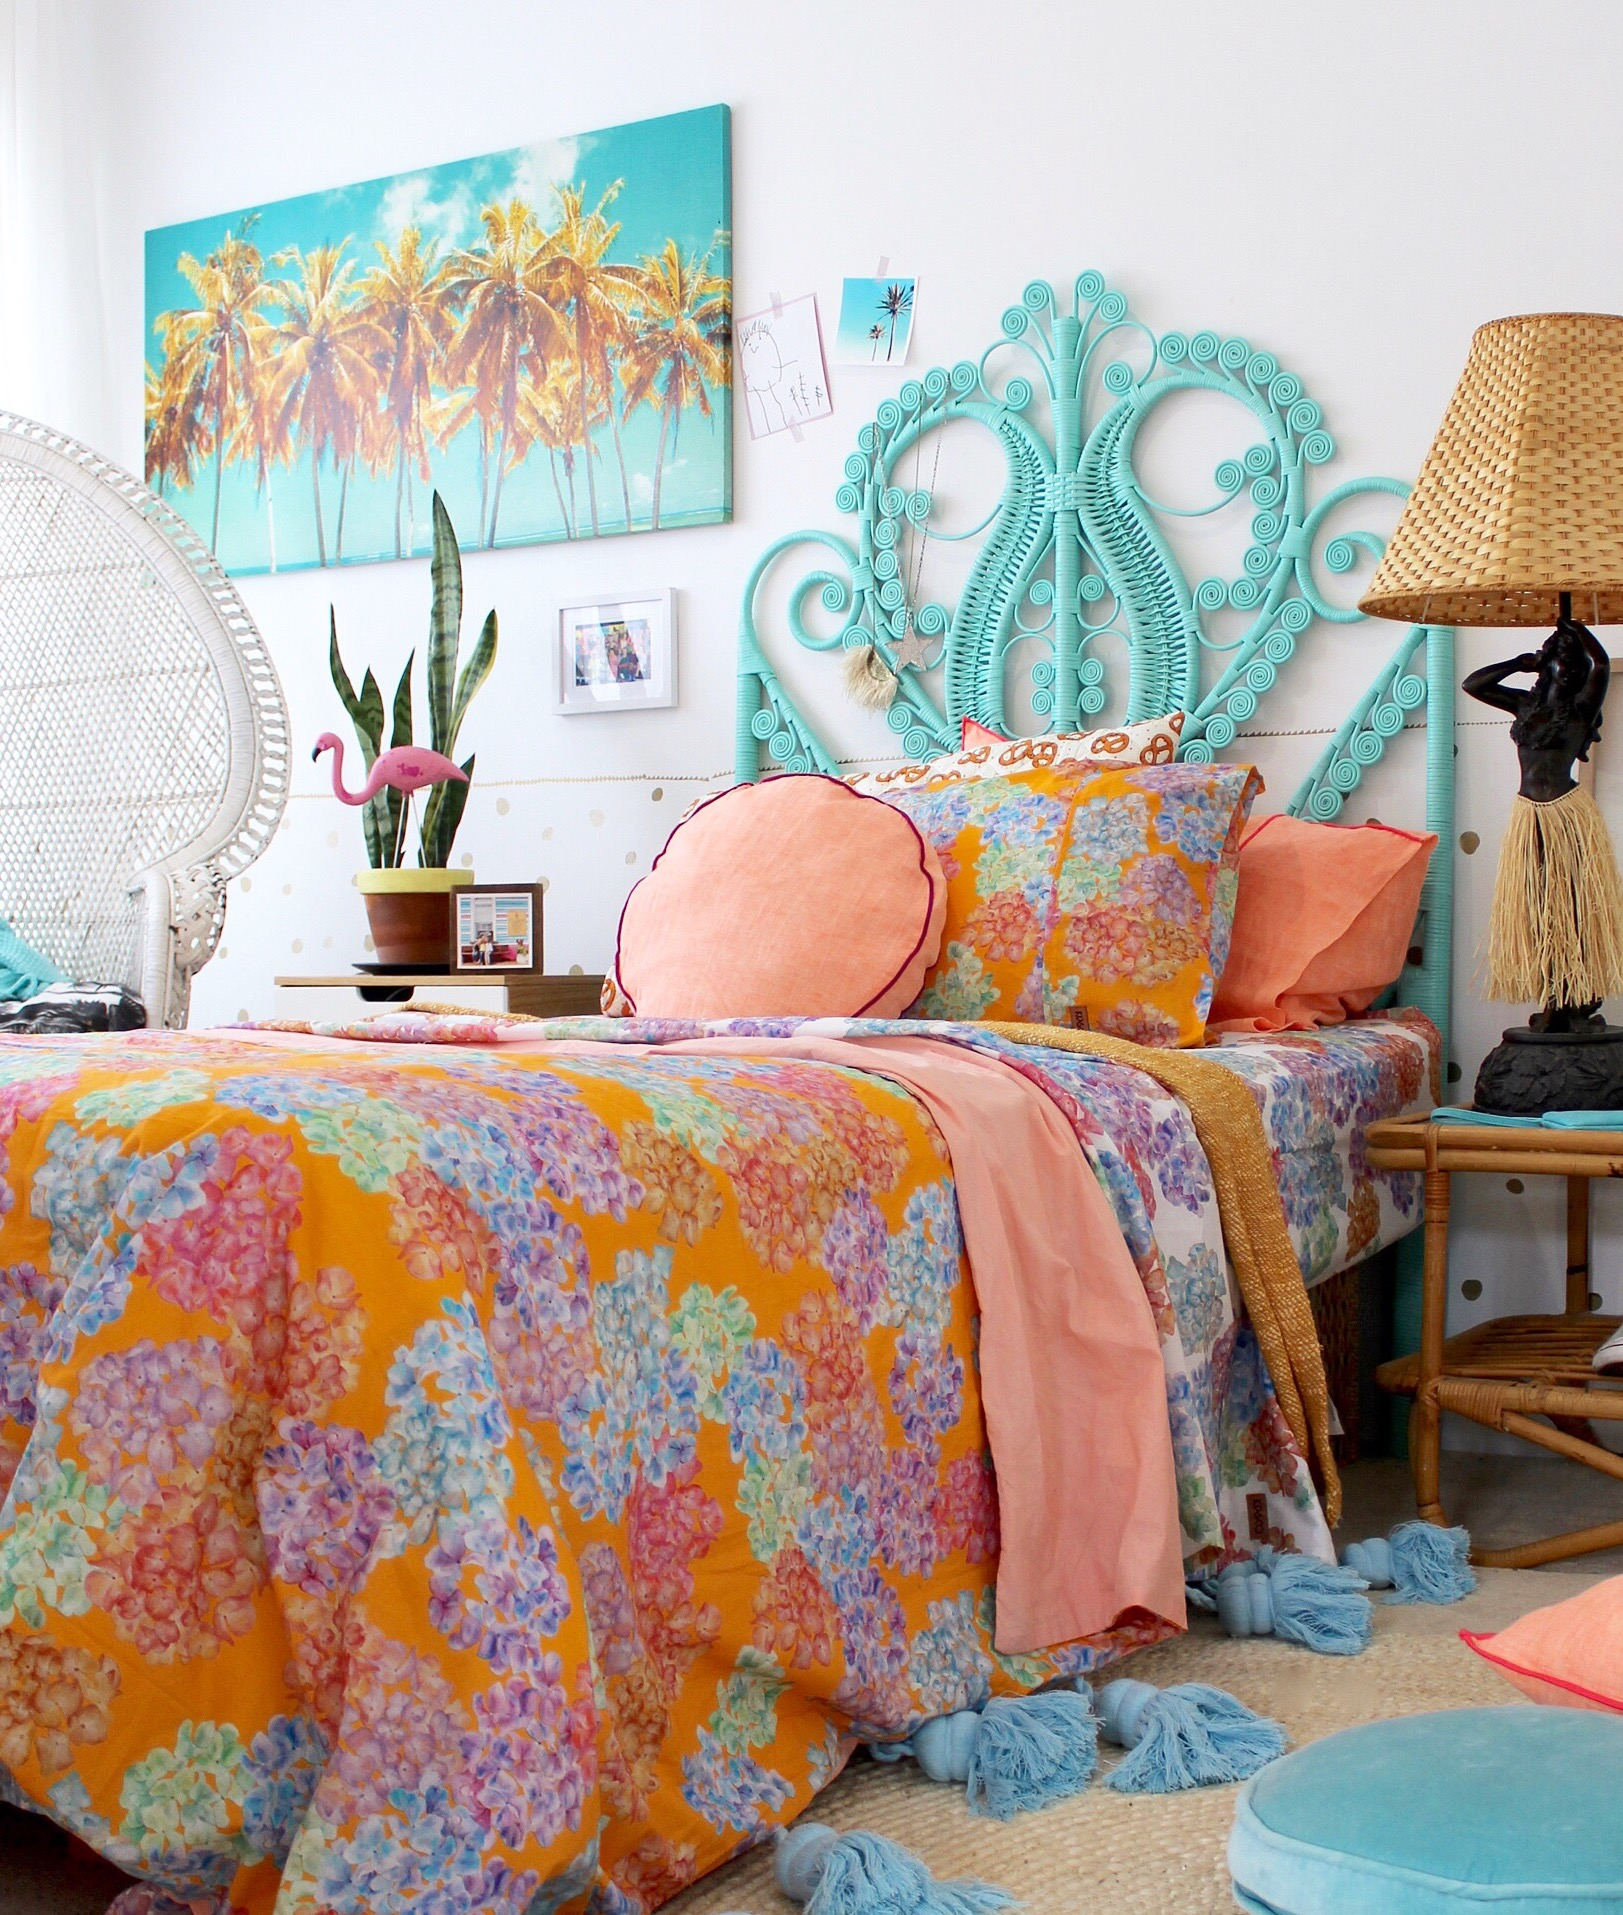 kids bedroom ideas | trending bedroom decor ideas for girls // boho brights more on the blog!